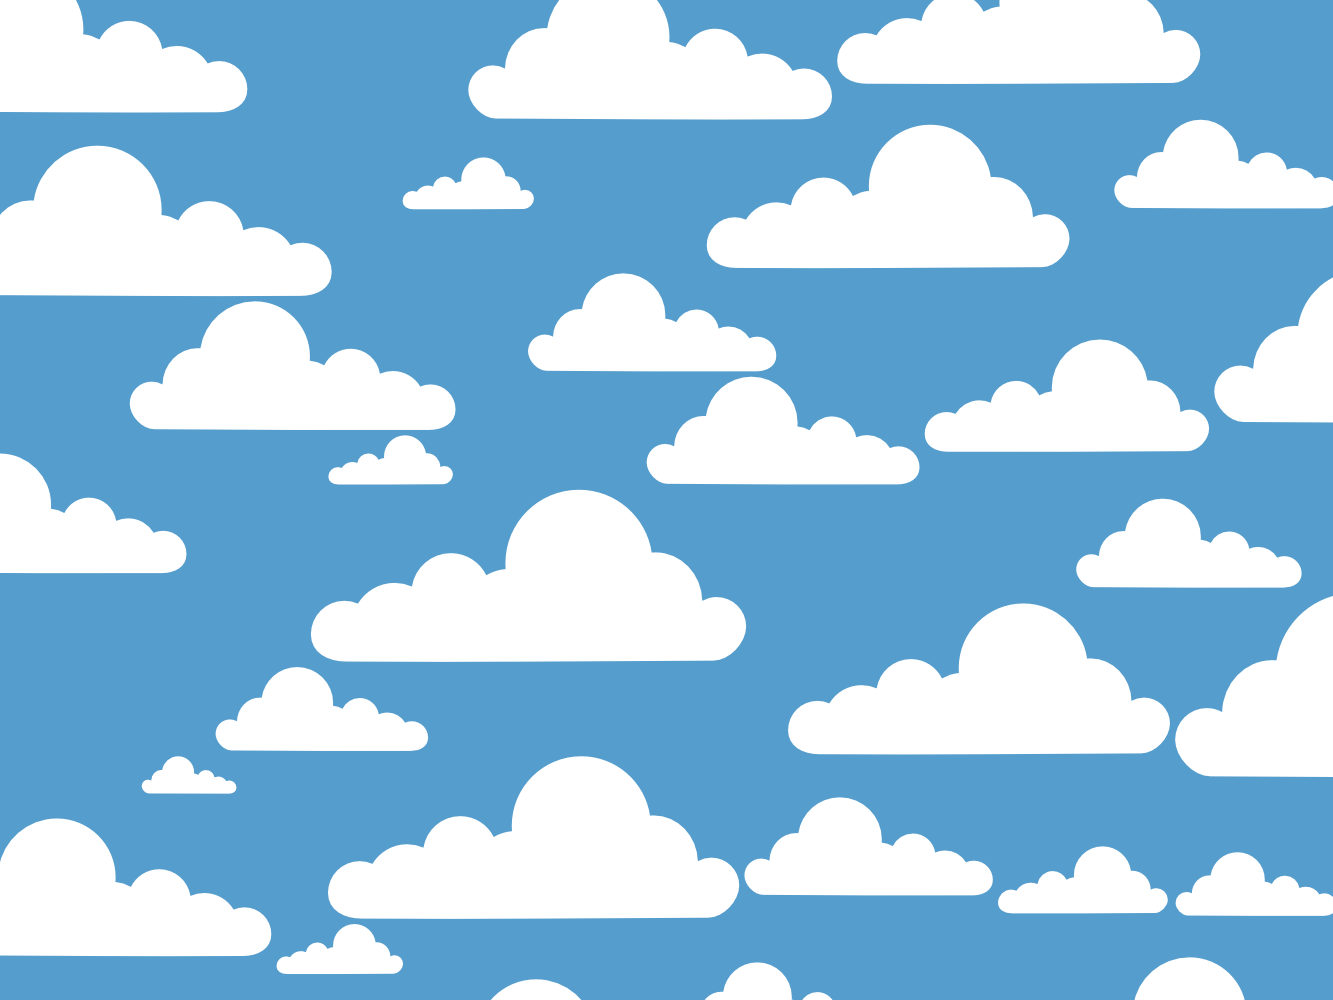 Clouds Clipart & Clouds Clip Art Images - ClipartALL.com picture library